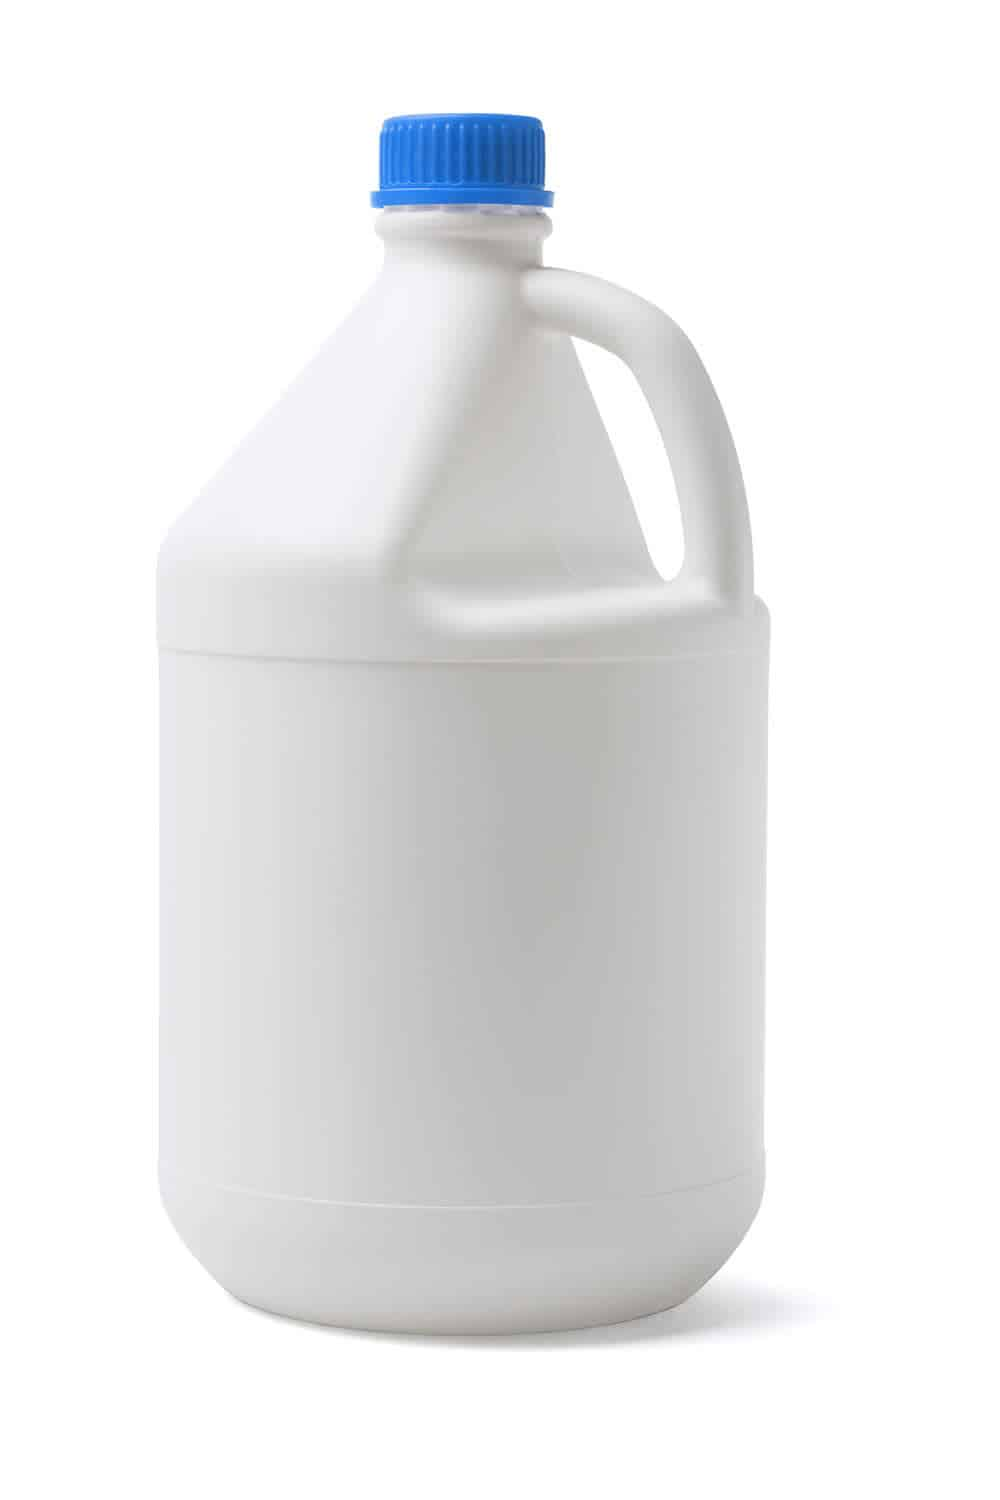 Is Bleach Bad for Your Liver? - LiverSupport com